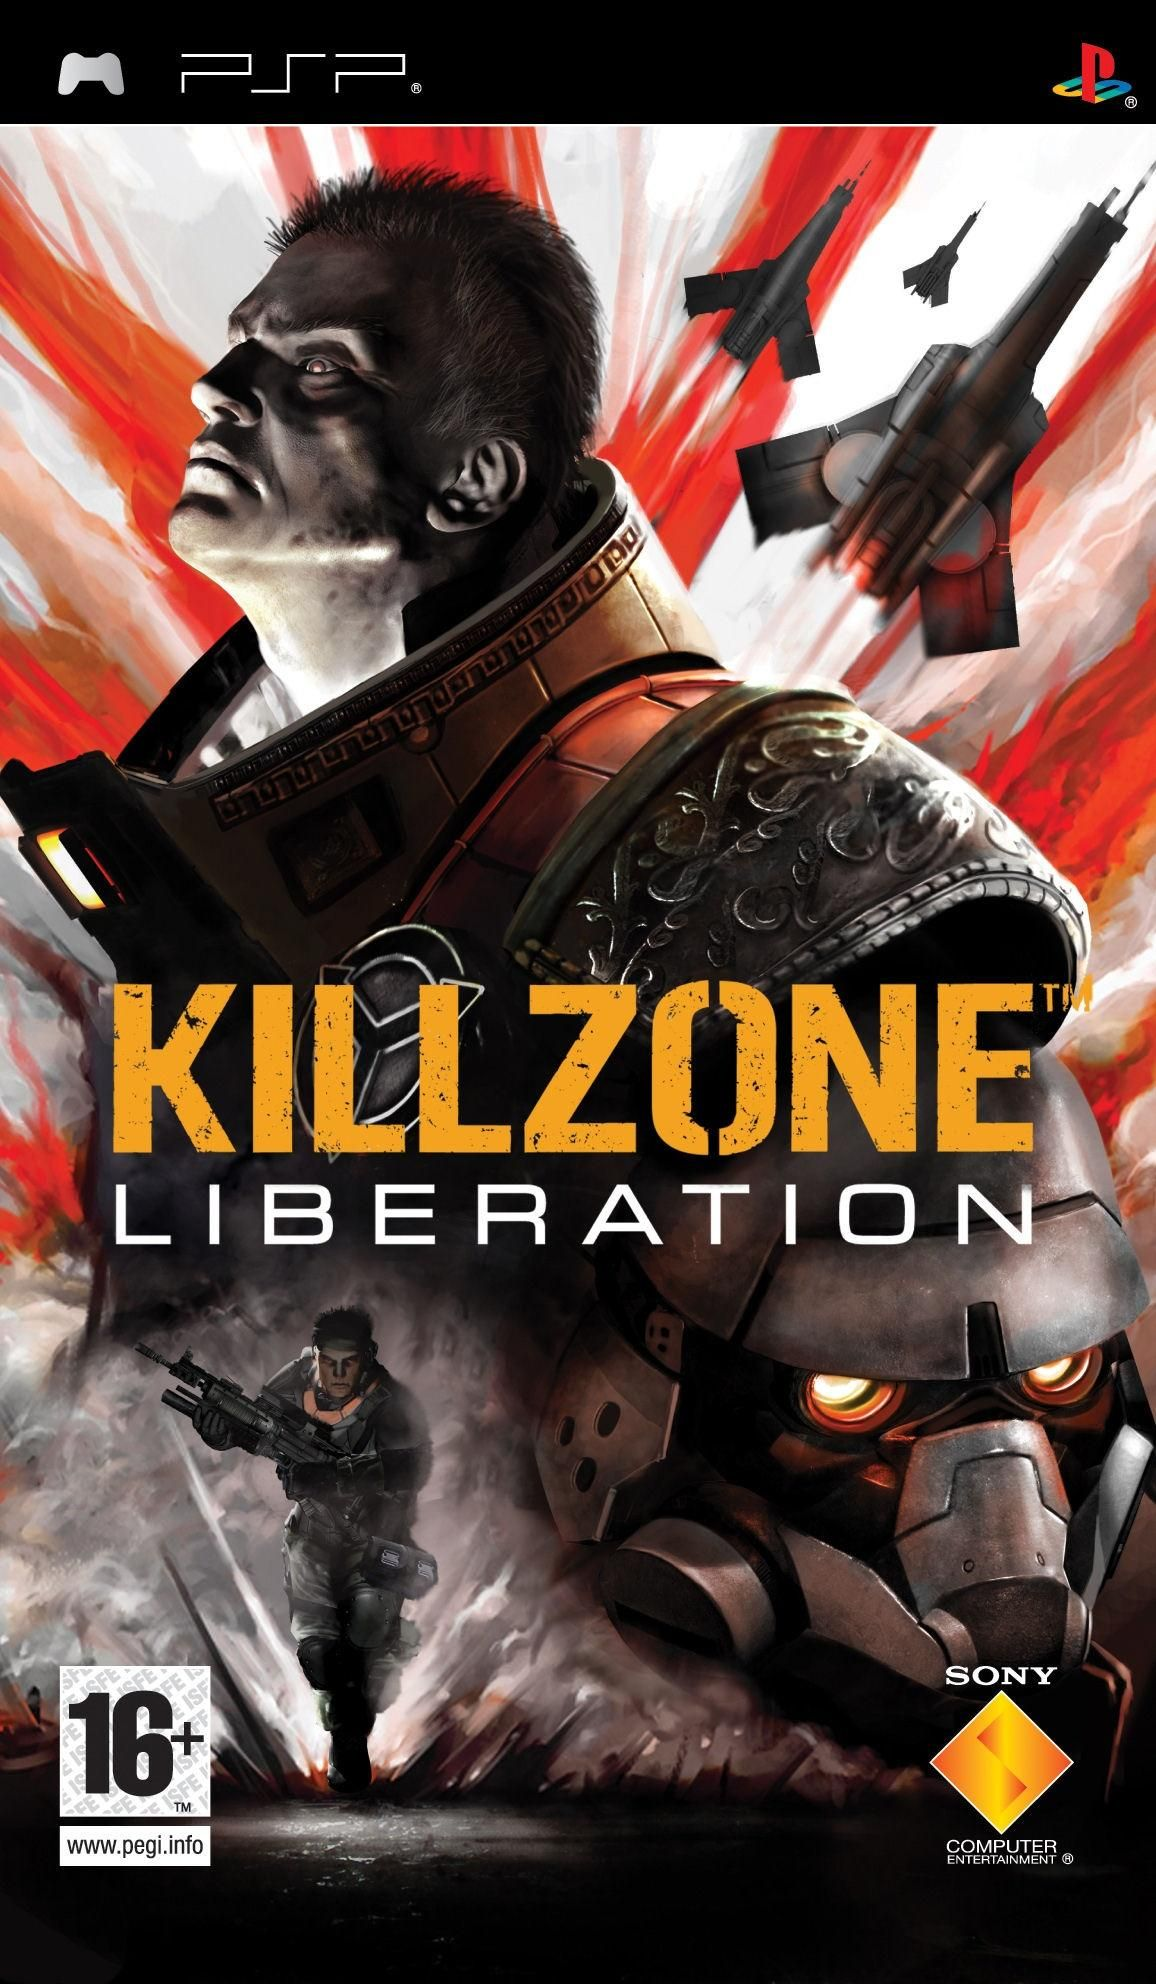 Killzone Liberation Box Shot For Psp Gamefaqs Playstation Portable Video Games Pc Playstation